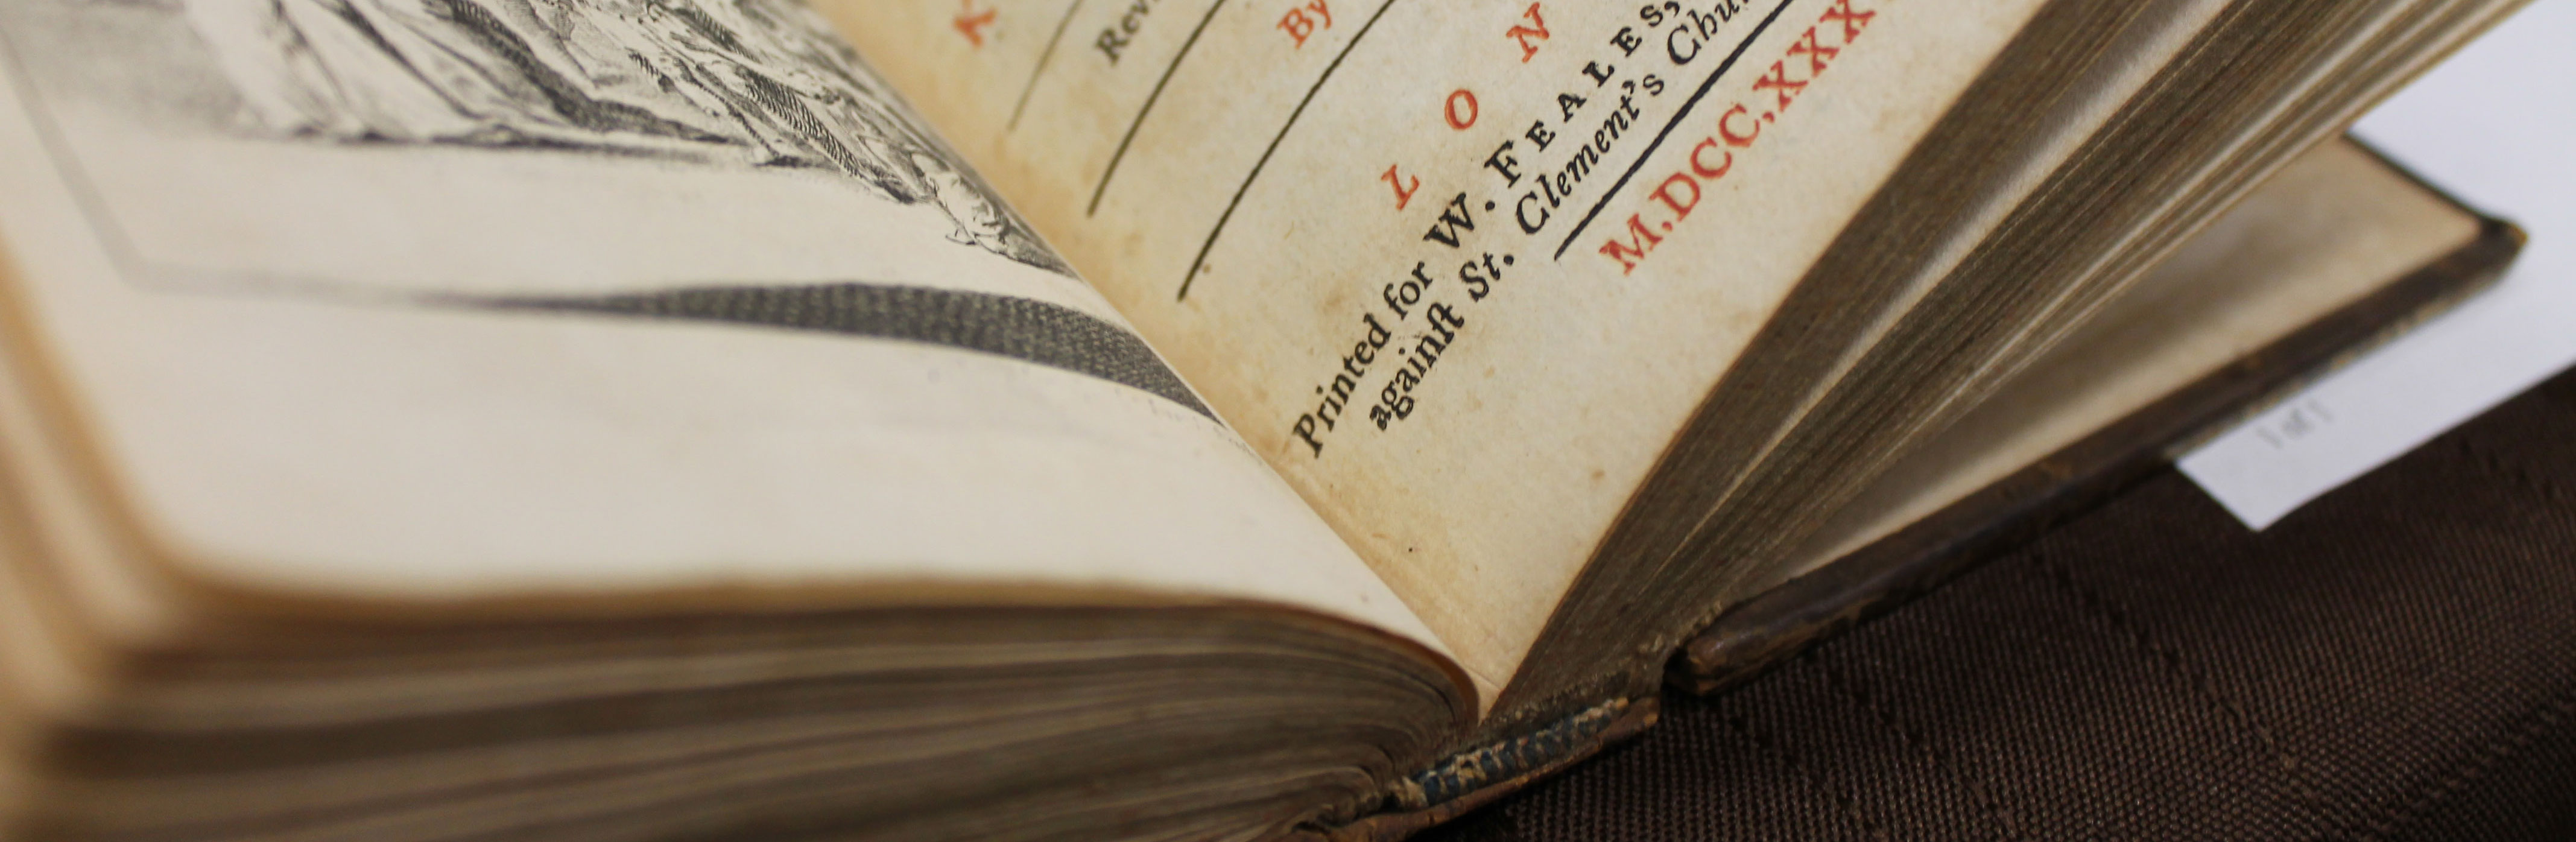 Explore Special Collections